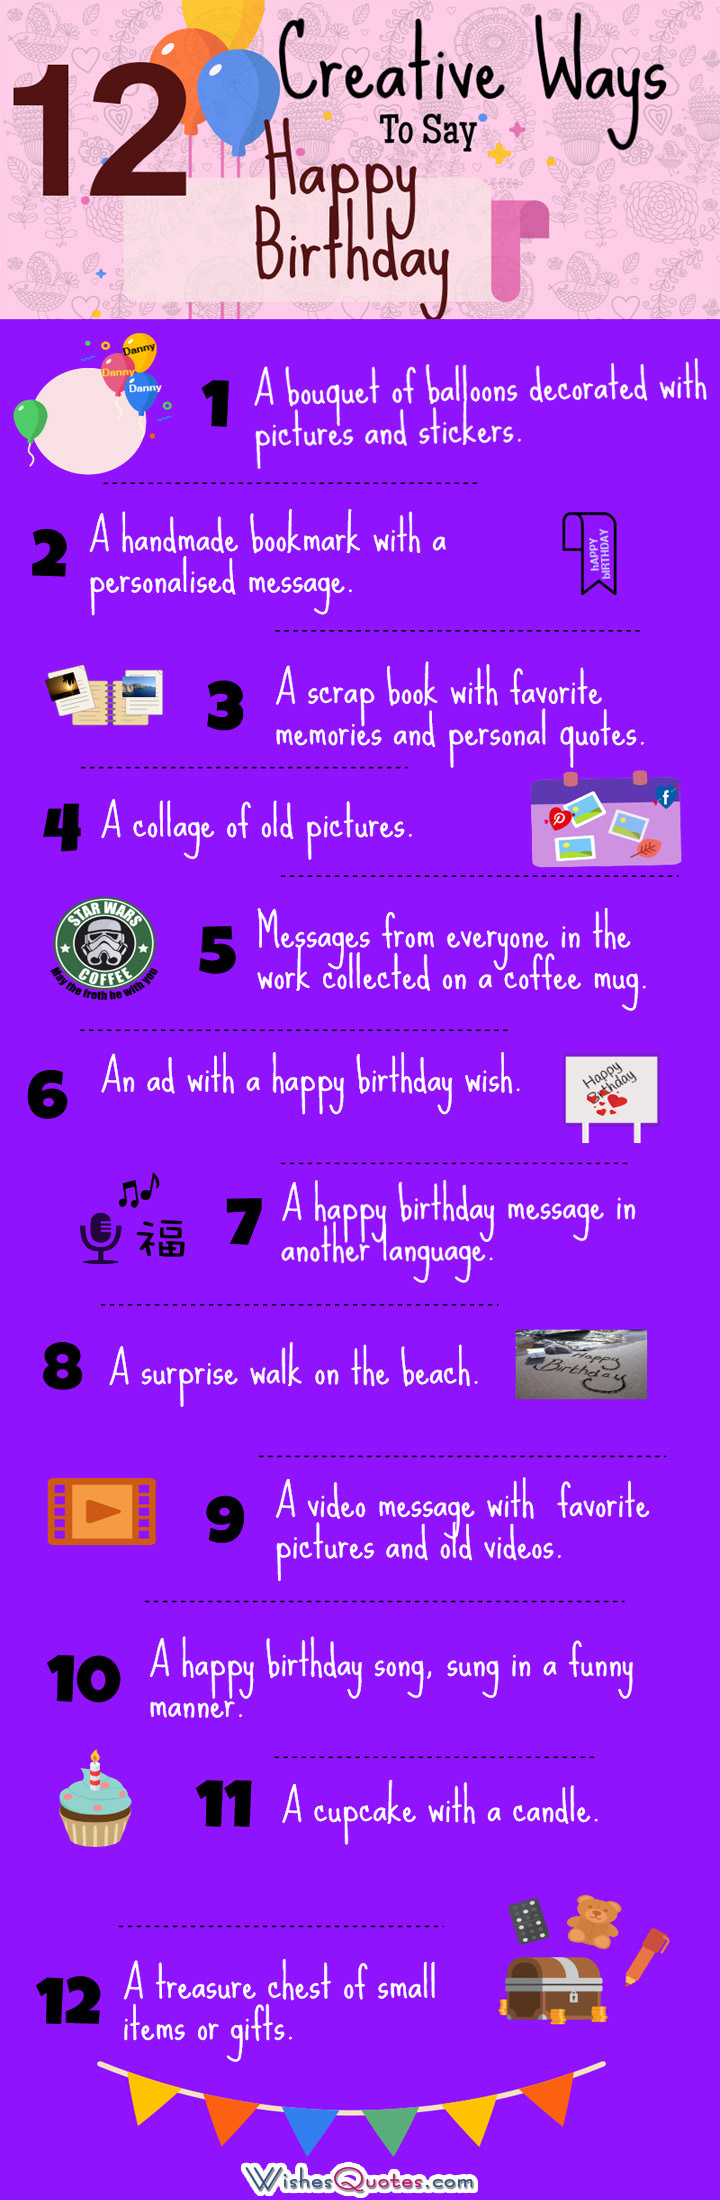 clever ways to say happy birthday ; 12-Creative-to-Say-Happy-Birthday-Infographic